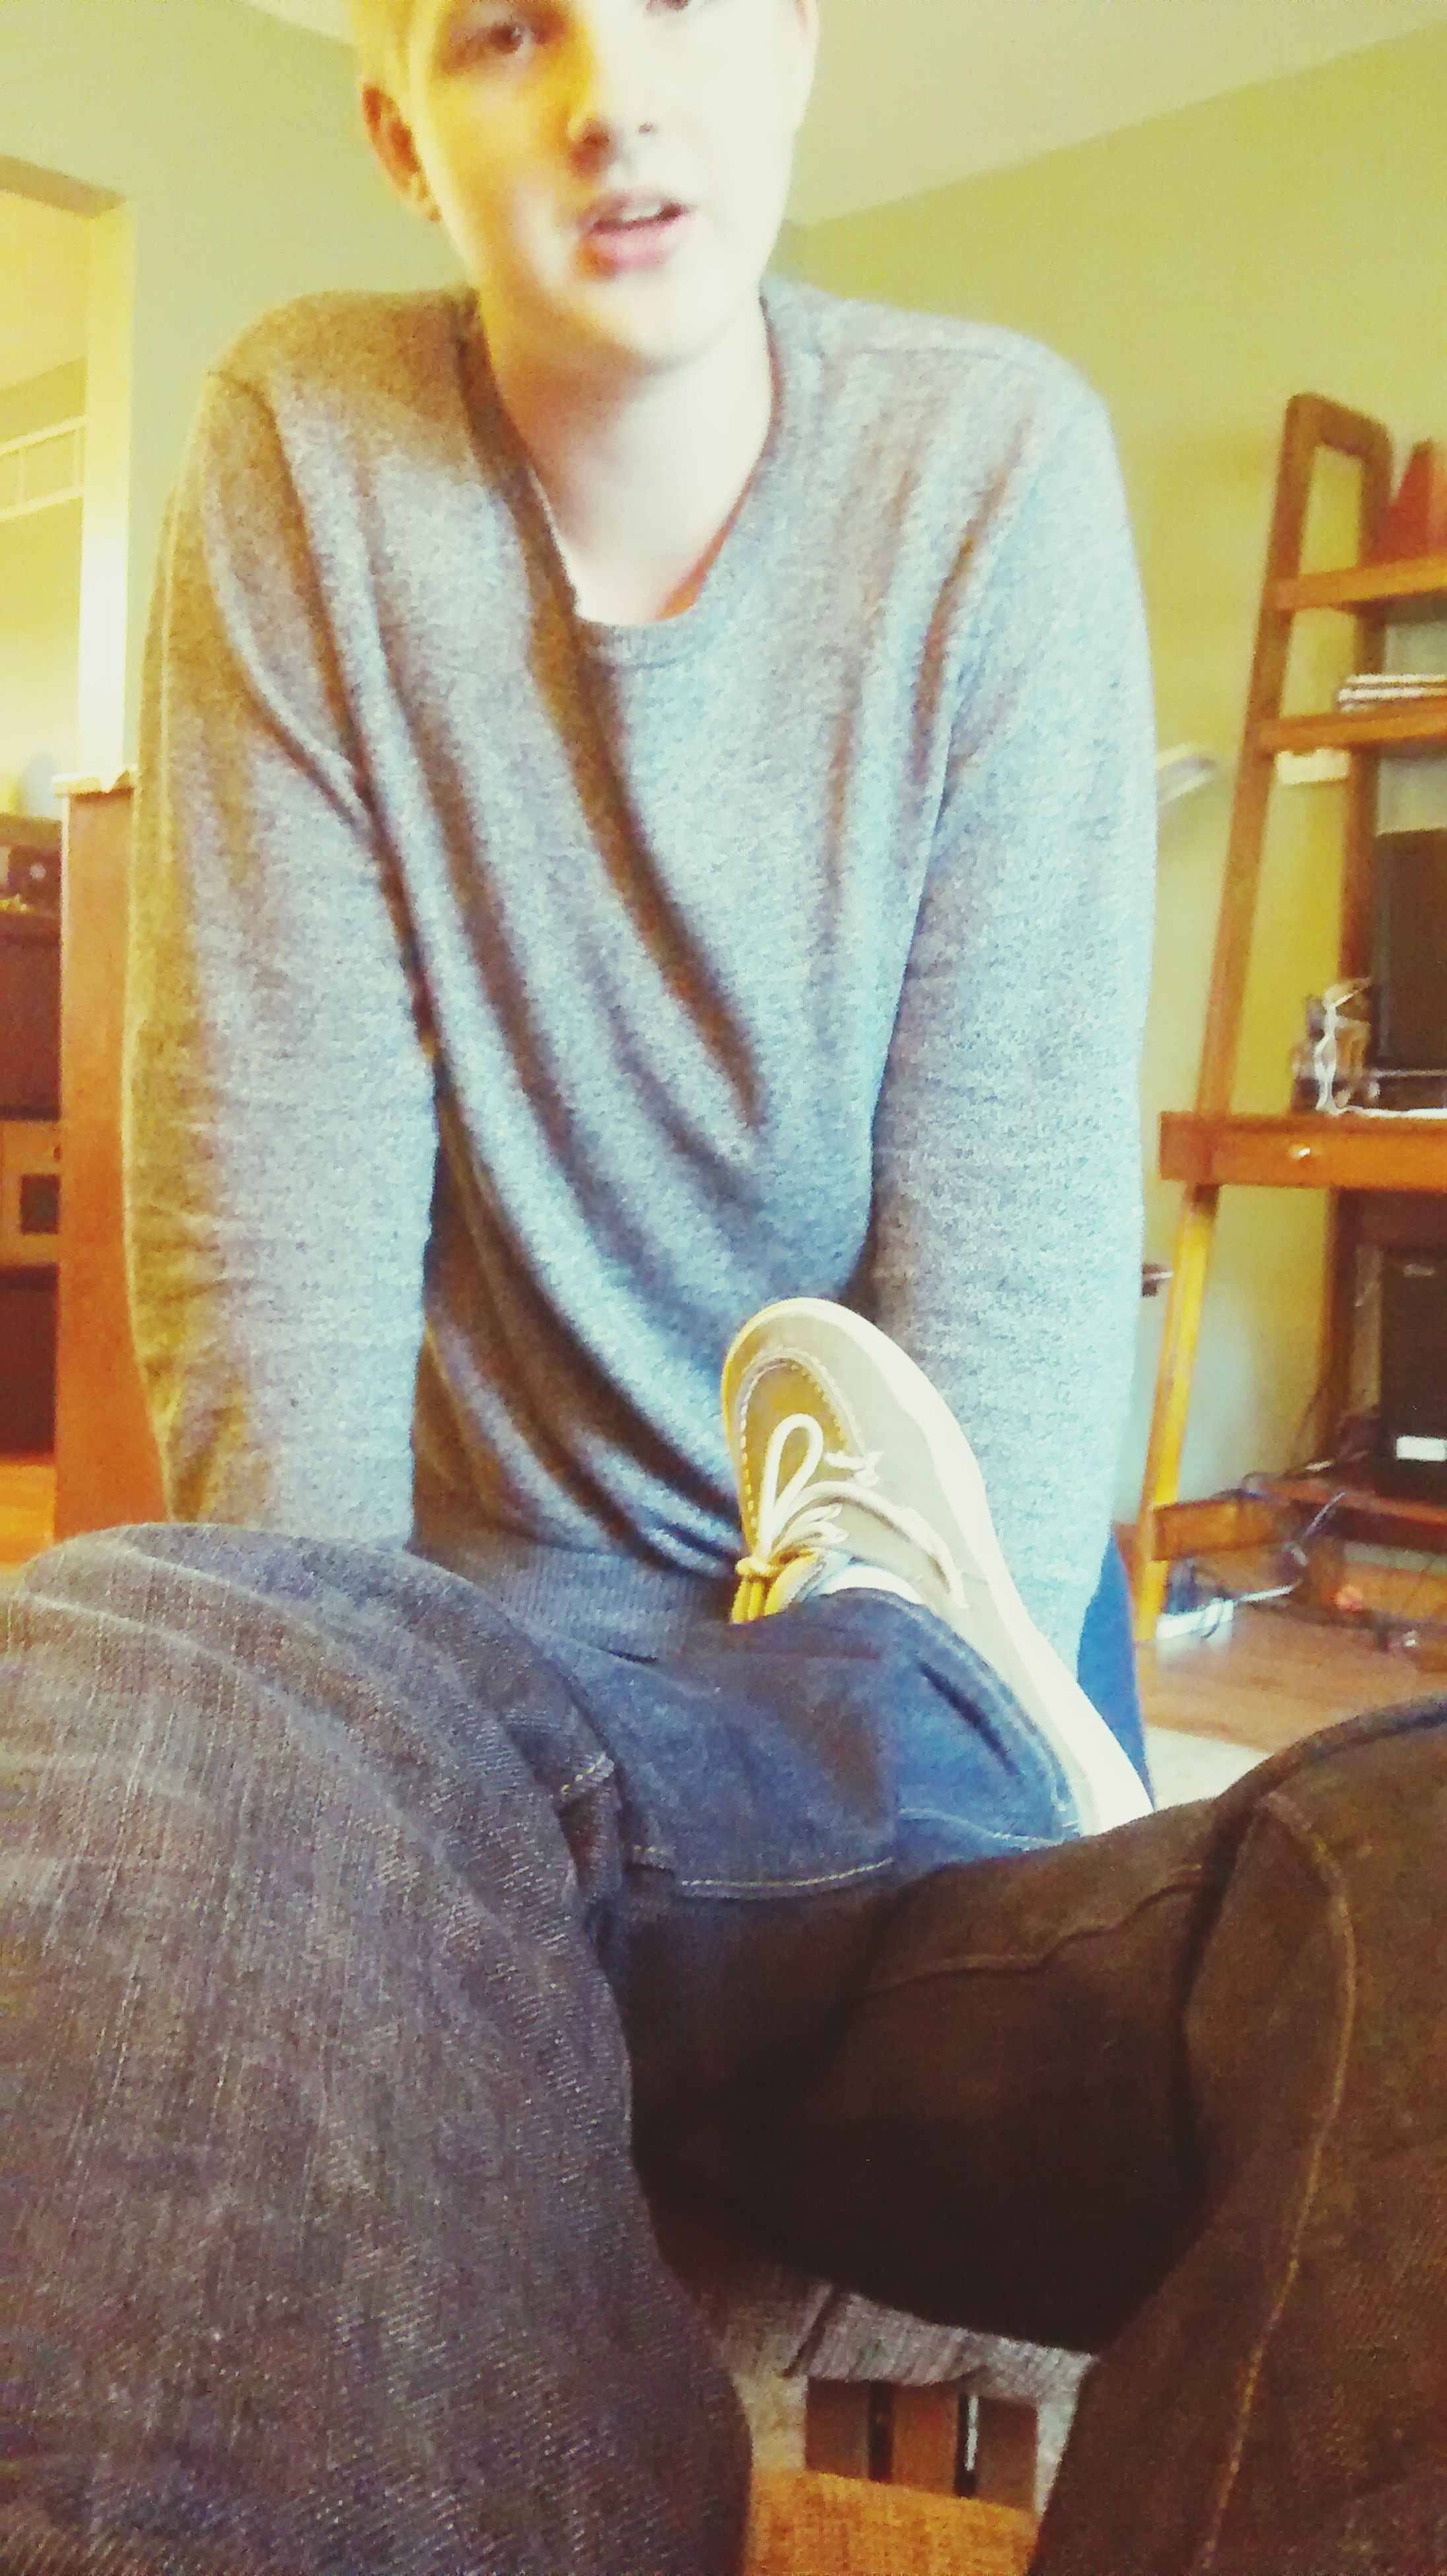 casual clothing, indoors, lifestyles, person, three quarter length, front view, leisure activity, sitting, standing, young adult, home interior, jeans, full length, childhood, jacket, waist up, young men, side view